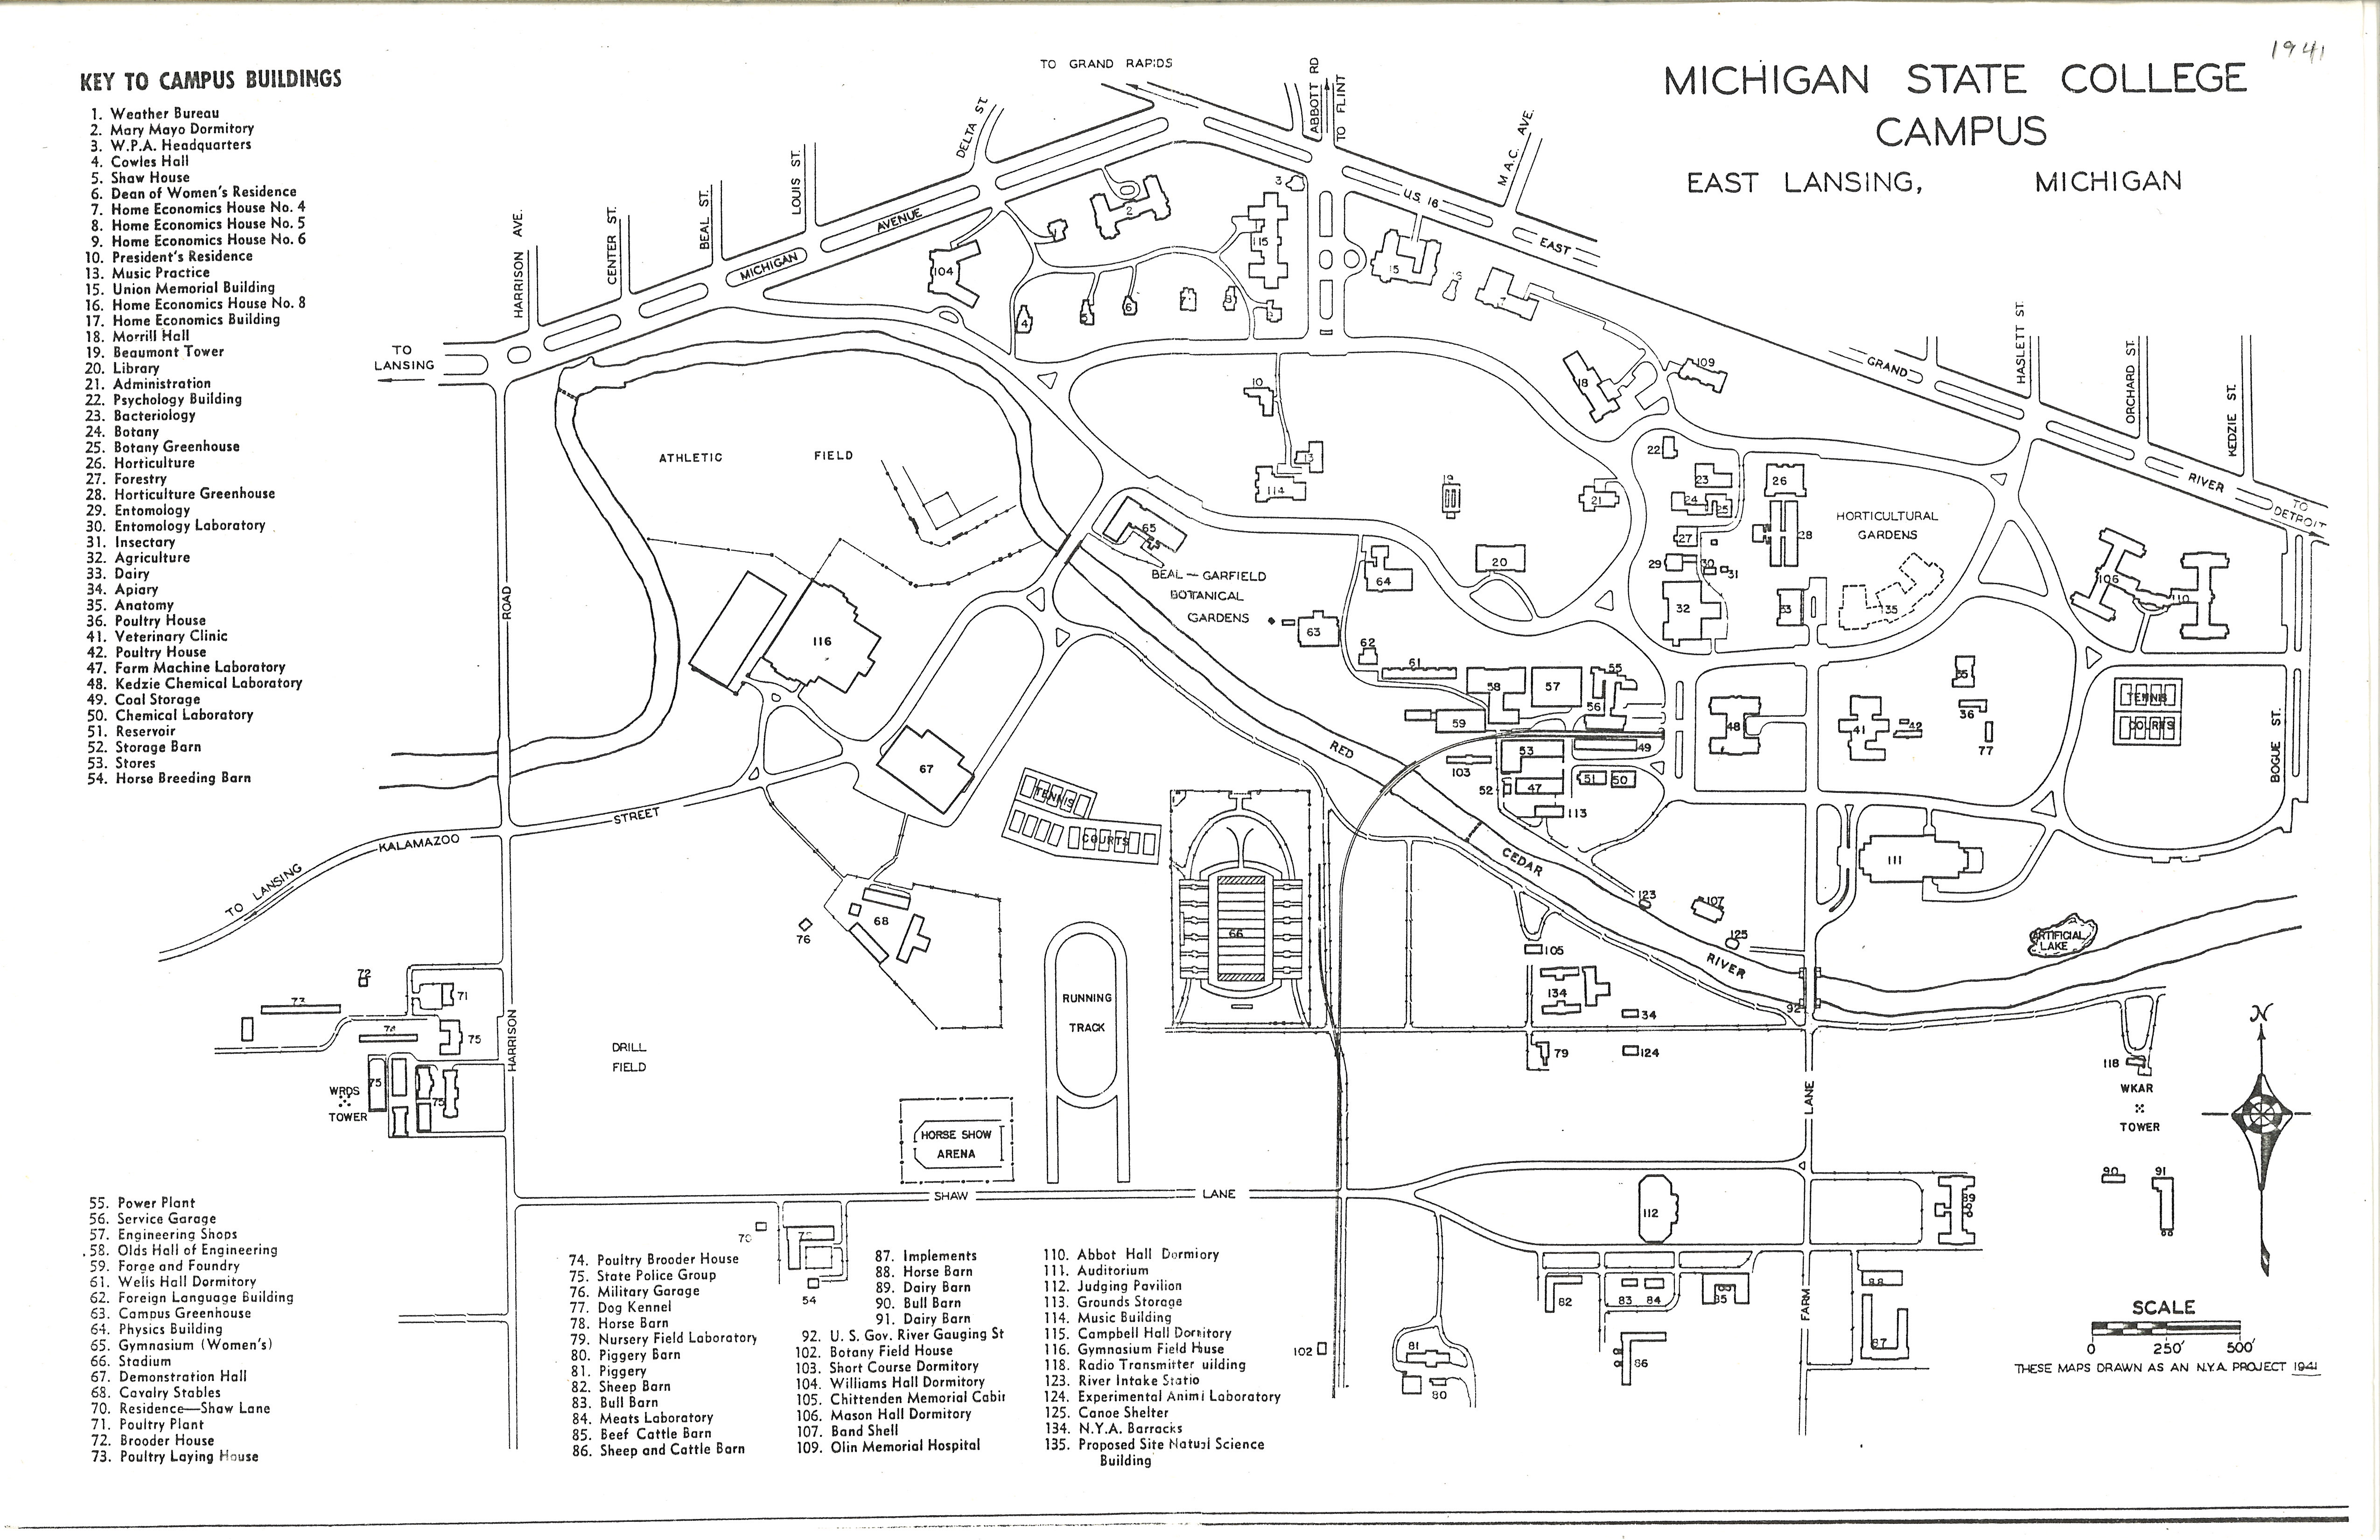 kenyon college campus map On The Banks Of The Red Cedar Michigan State College Campus Map 1941 kenyon college campus map